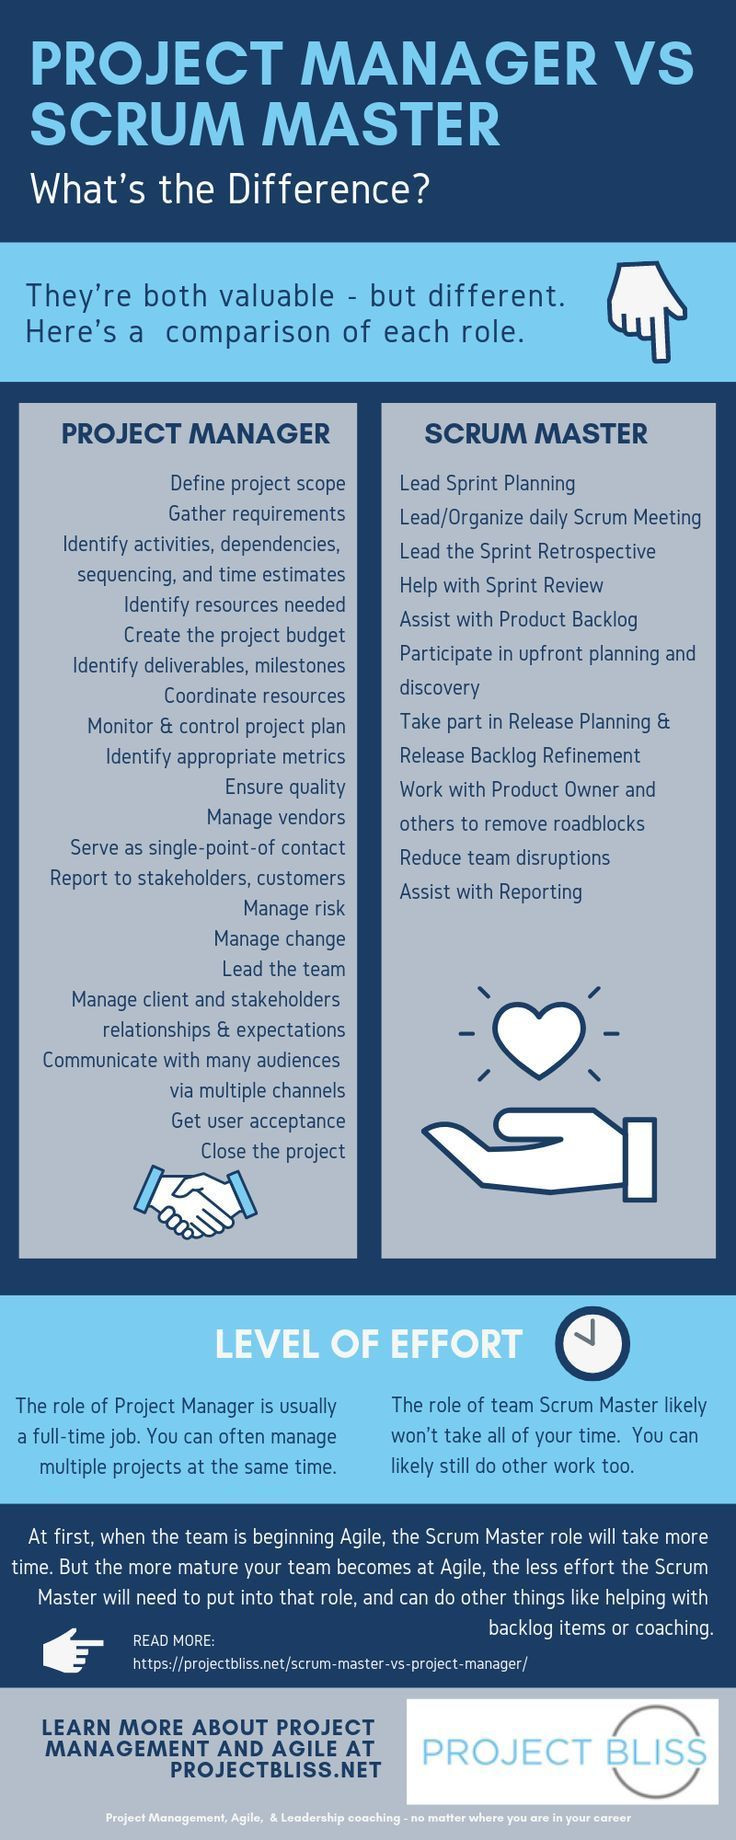 Scrum Master Vs Project Manager What S The Difference Project Bliss Project Management Project Management Infographic Scrum Master